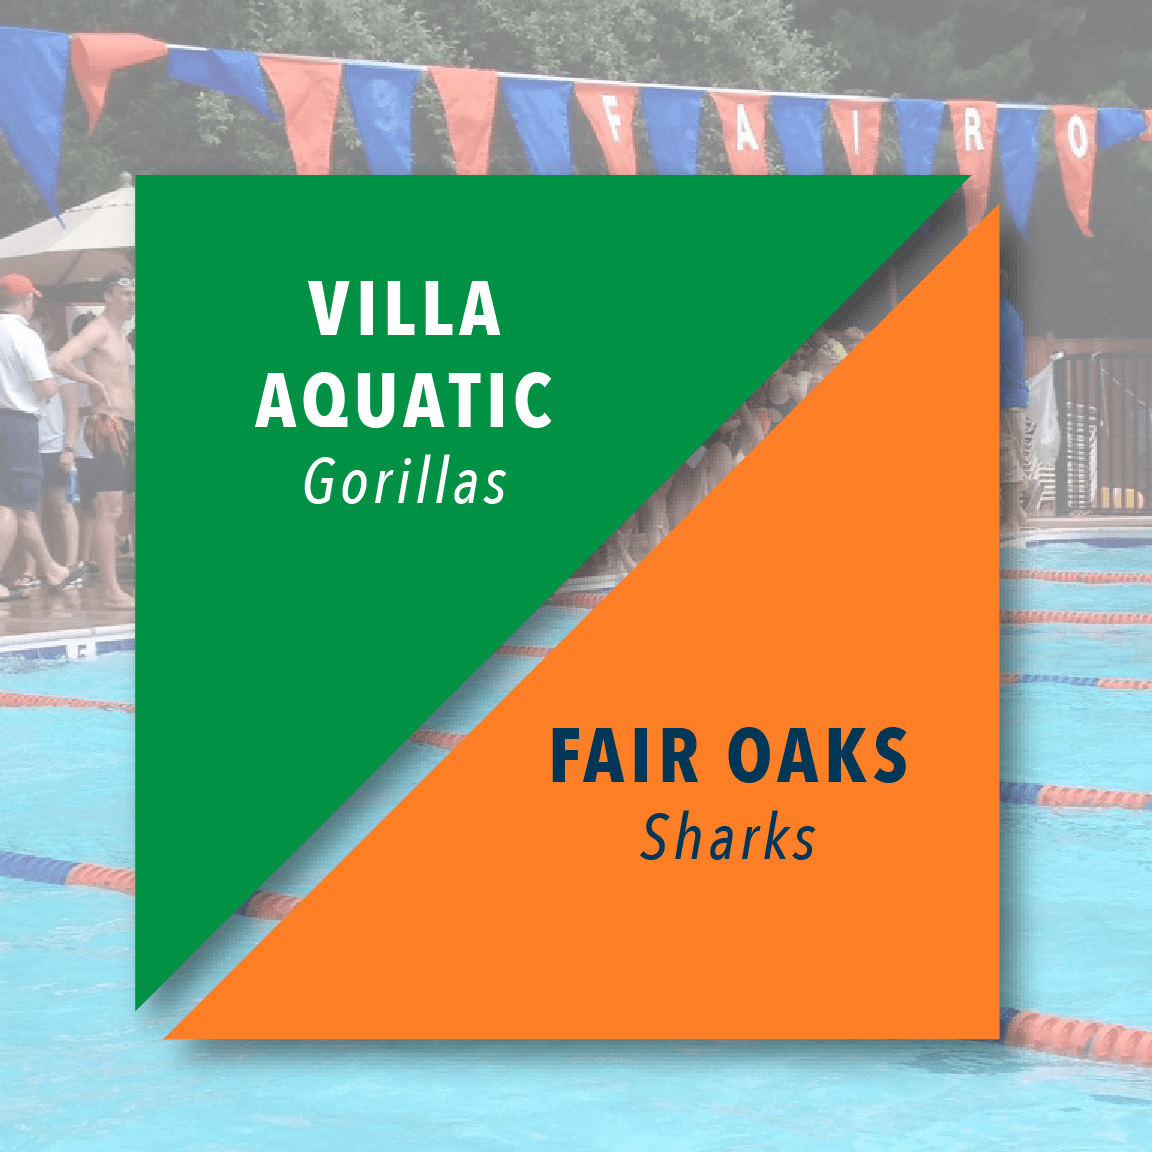 Wk 2 Meet of the Week Preview: Villa Aquatic @ Fair Oaks